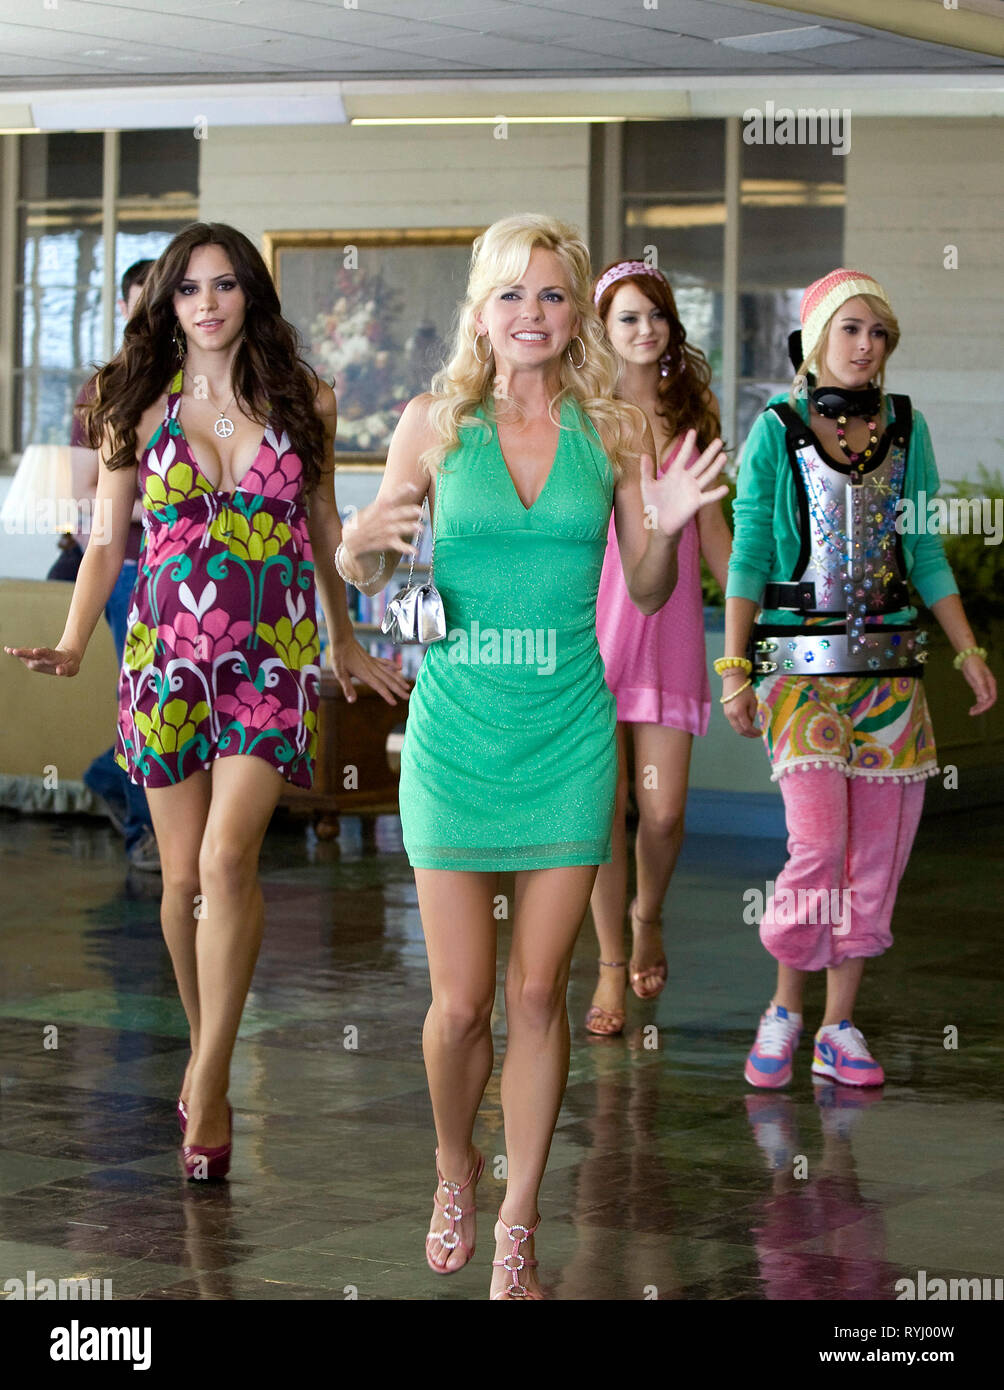 Katharine Mcphee Anna Faris Emma Stone Rumer Willis The House Bunny 2008 Stock Photo Alamy